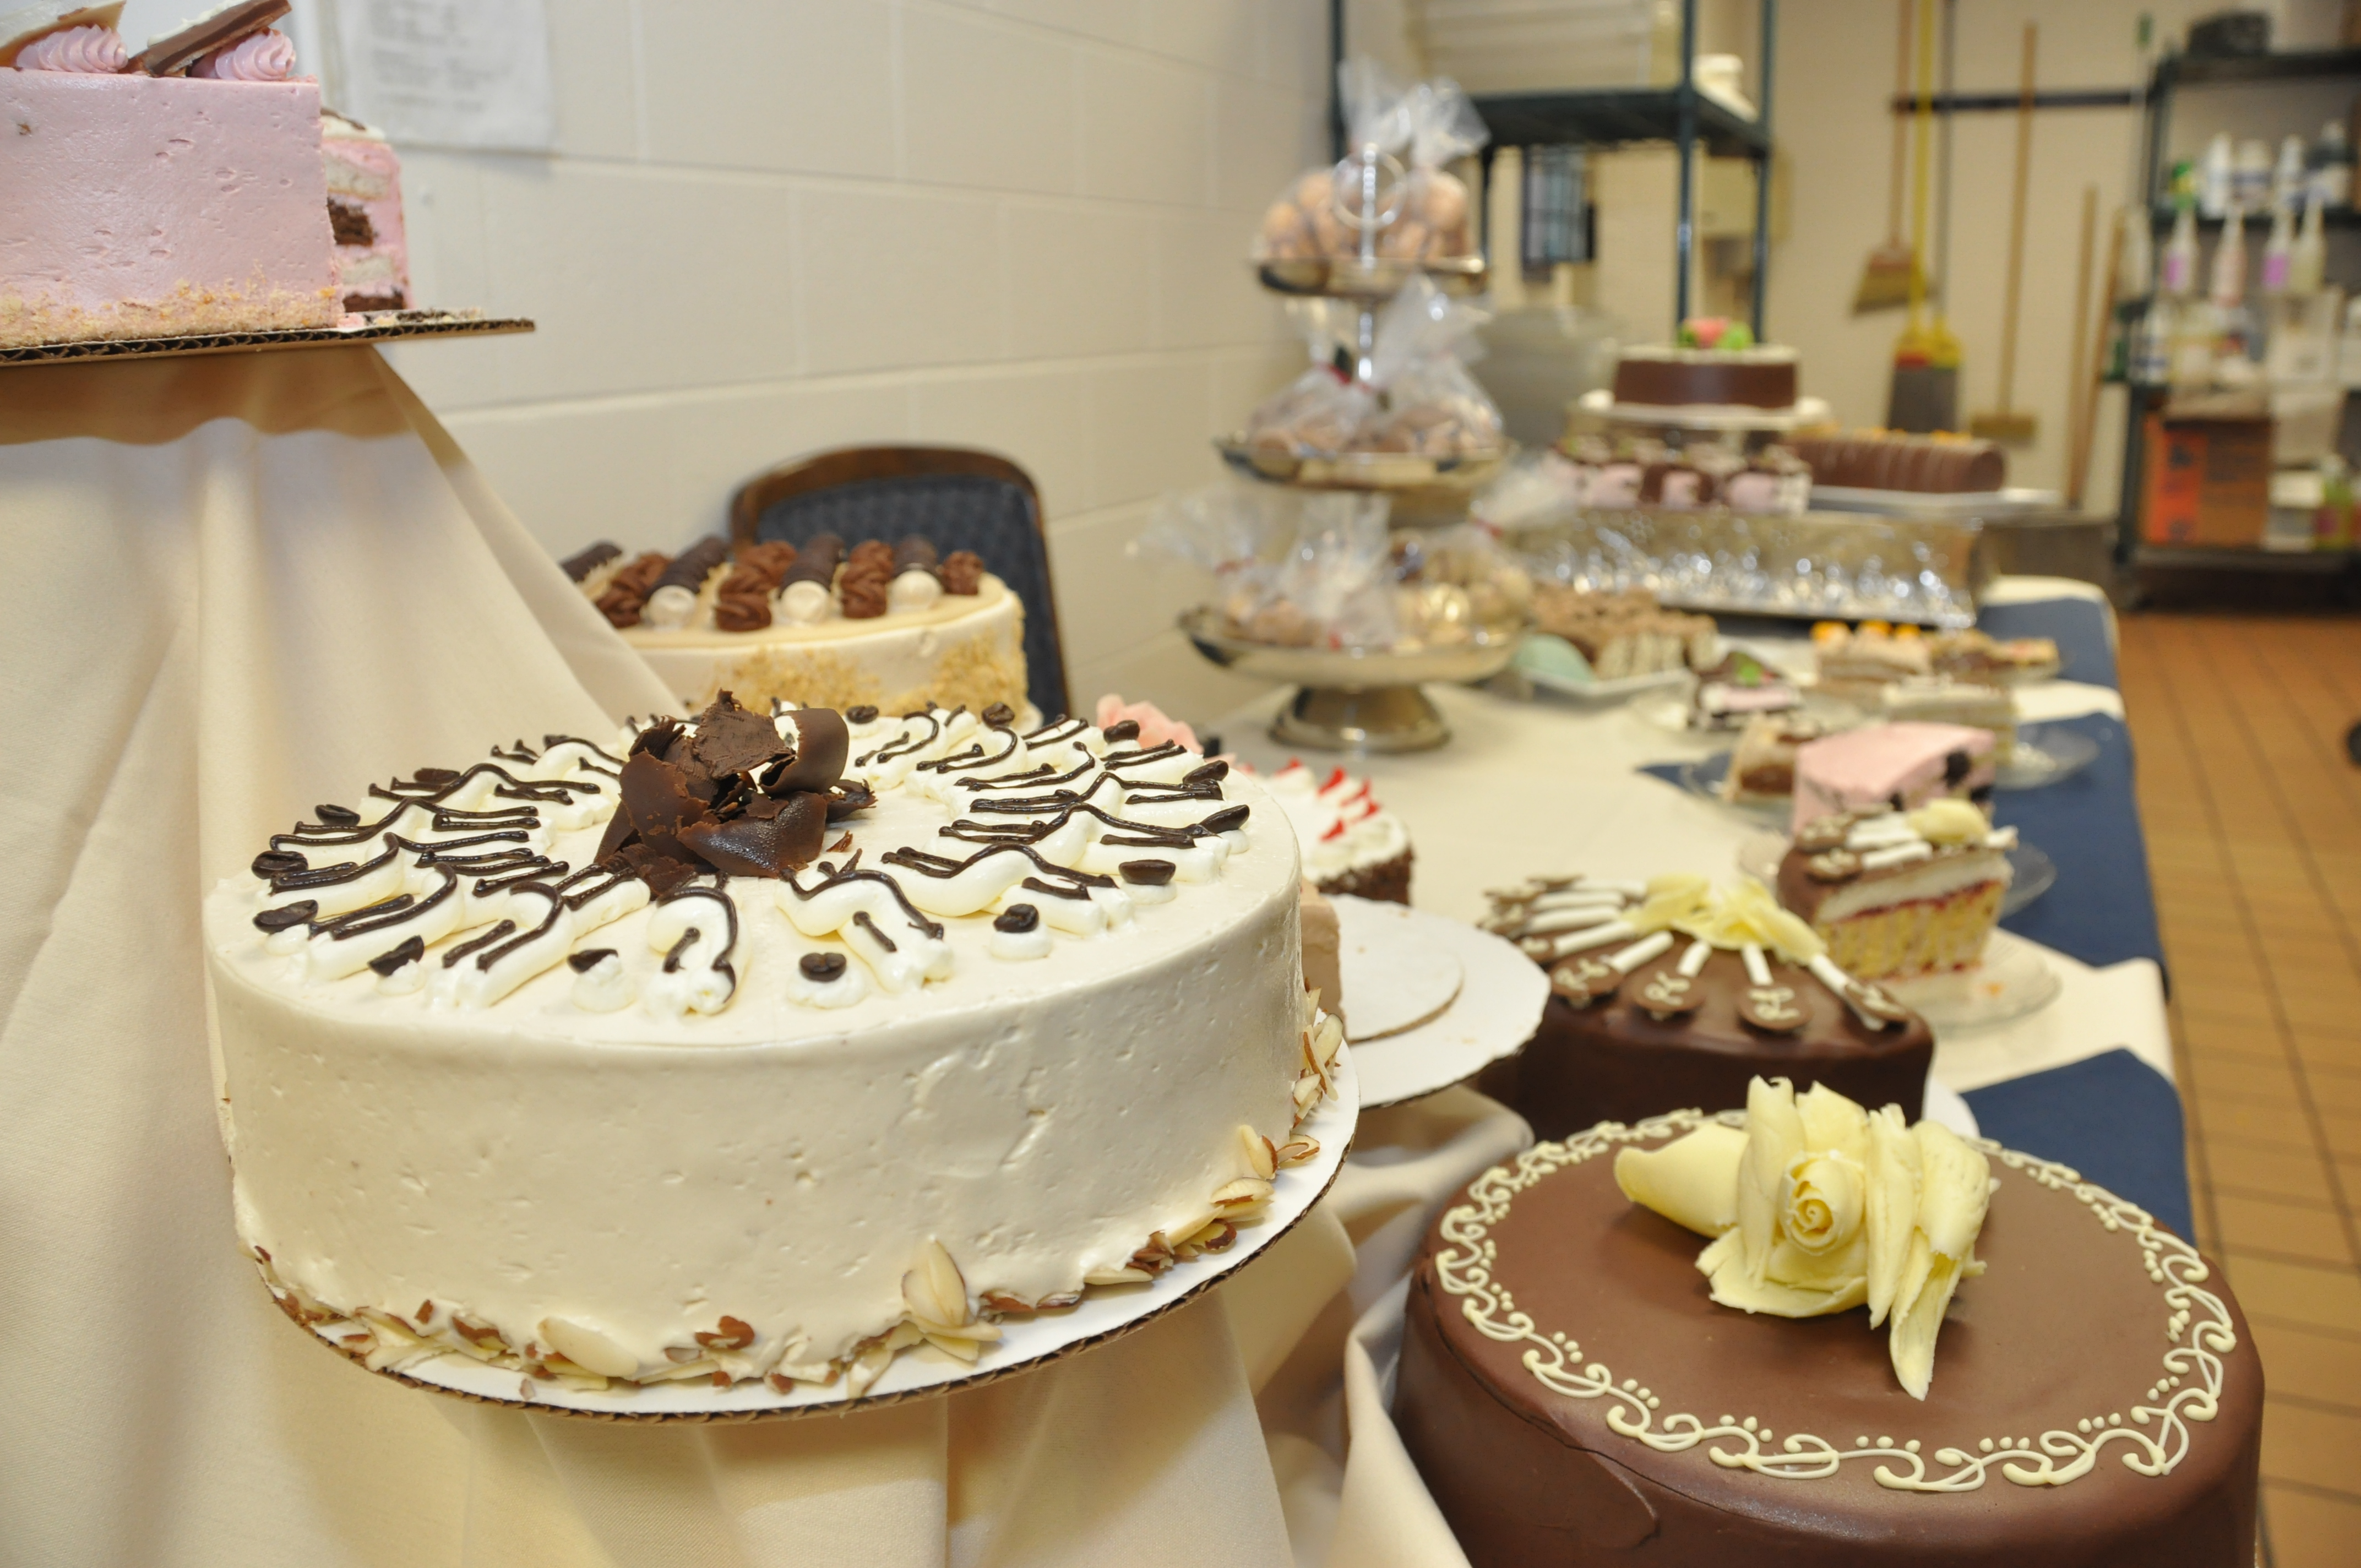 Culinary Arts - Baking and Pastry Arts Concentration (ASCT)